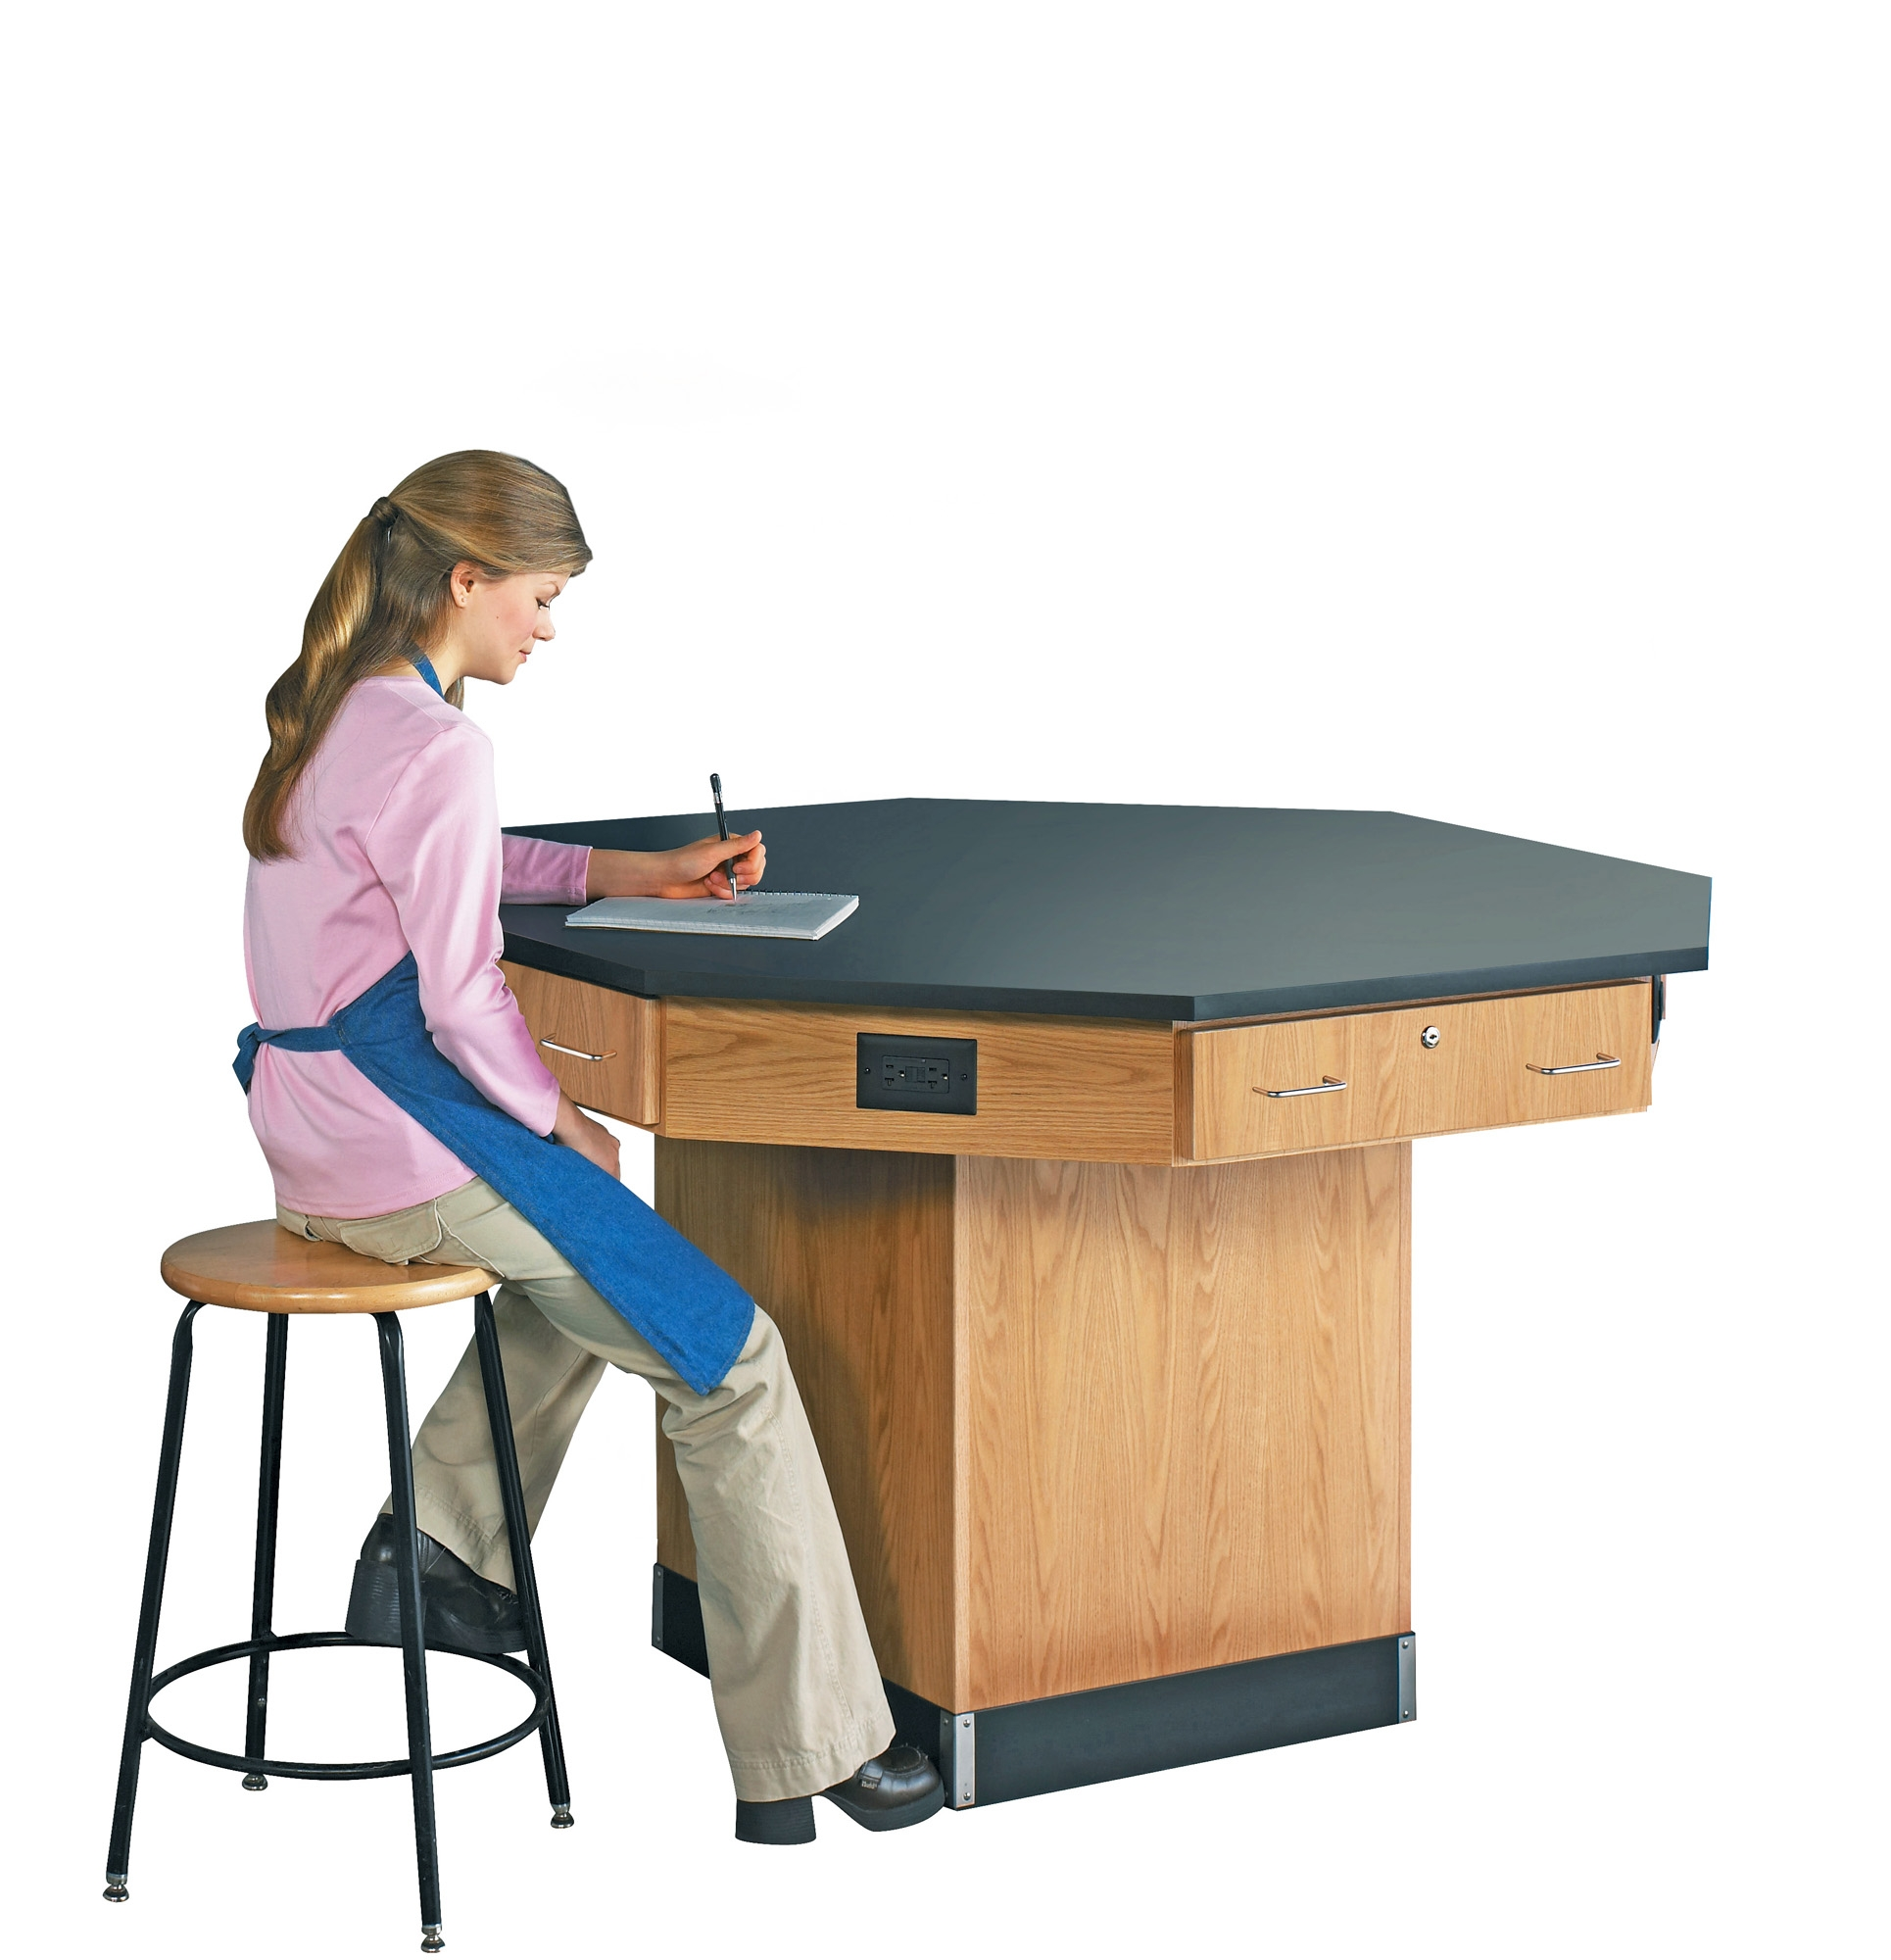 Diversified Woodcrafts Octagon Workstation with Pedestal Base - Phenolic Top